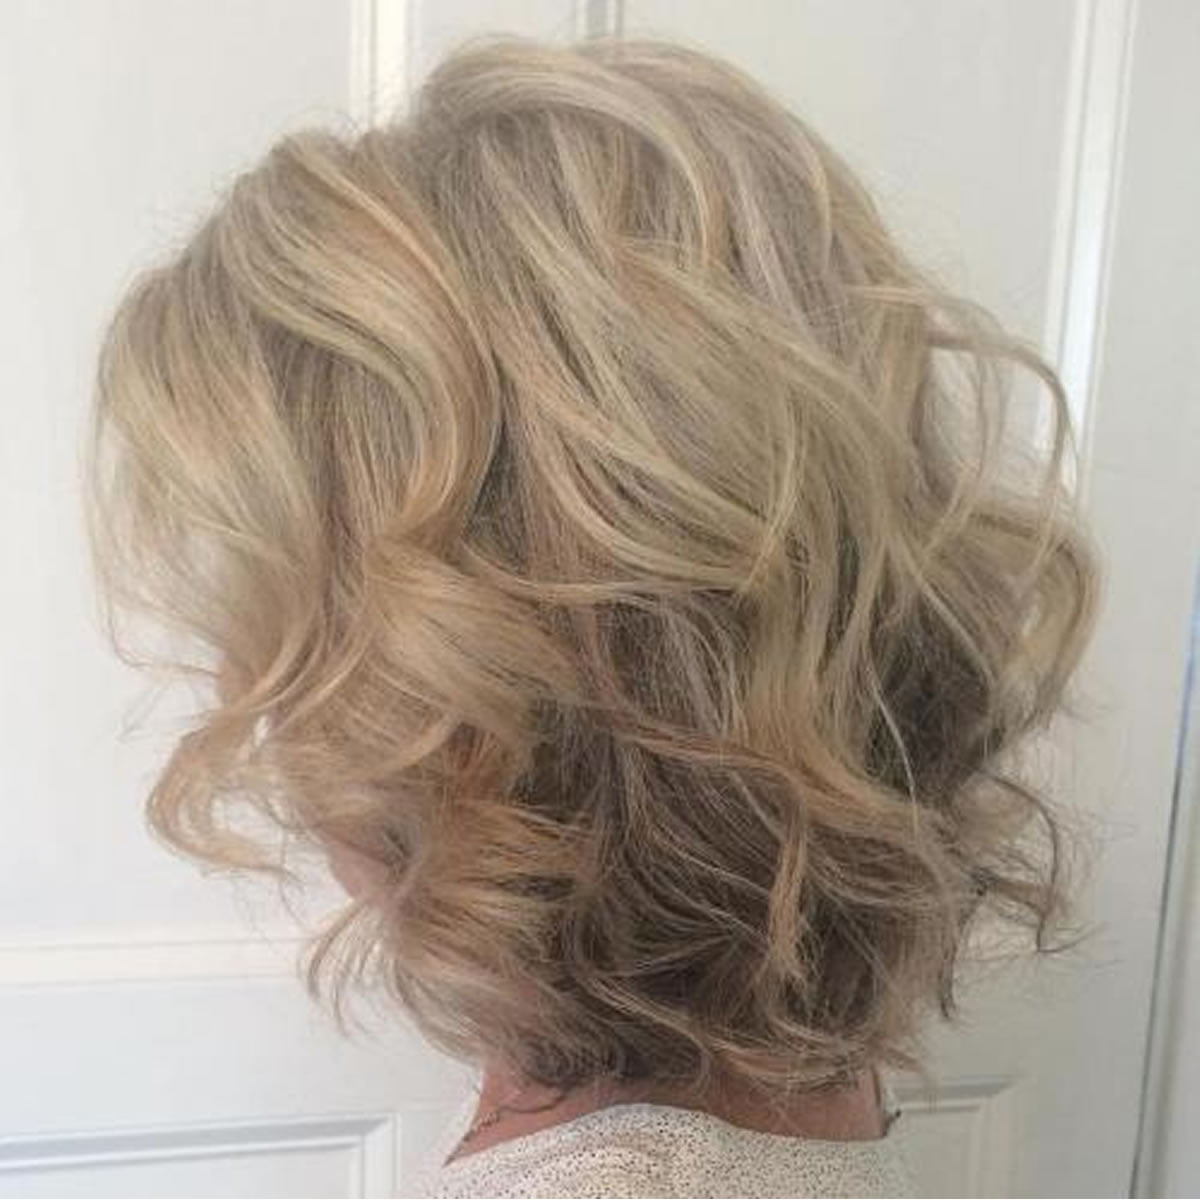 great haircuts for thinning hair 20 medium lenght hairstyles for thin hair ideas 6327 | Curly blonde medium lenght hairstyles for thin hair 2018